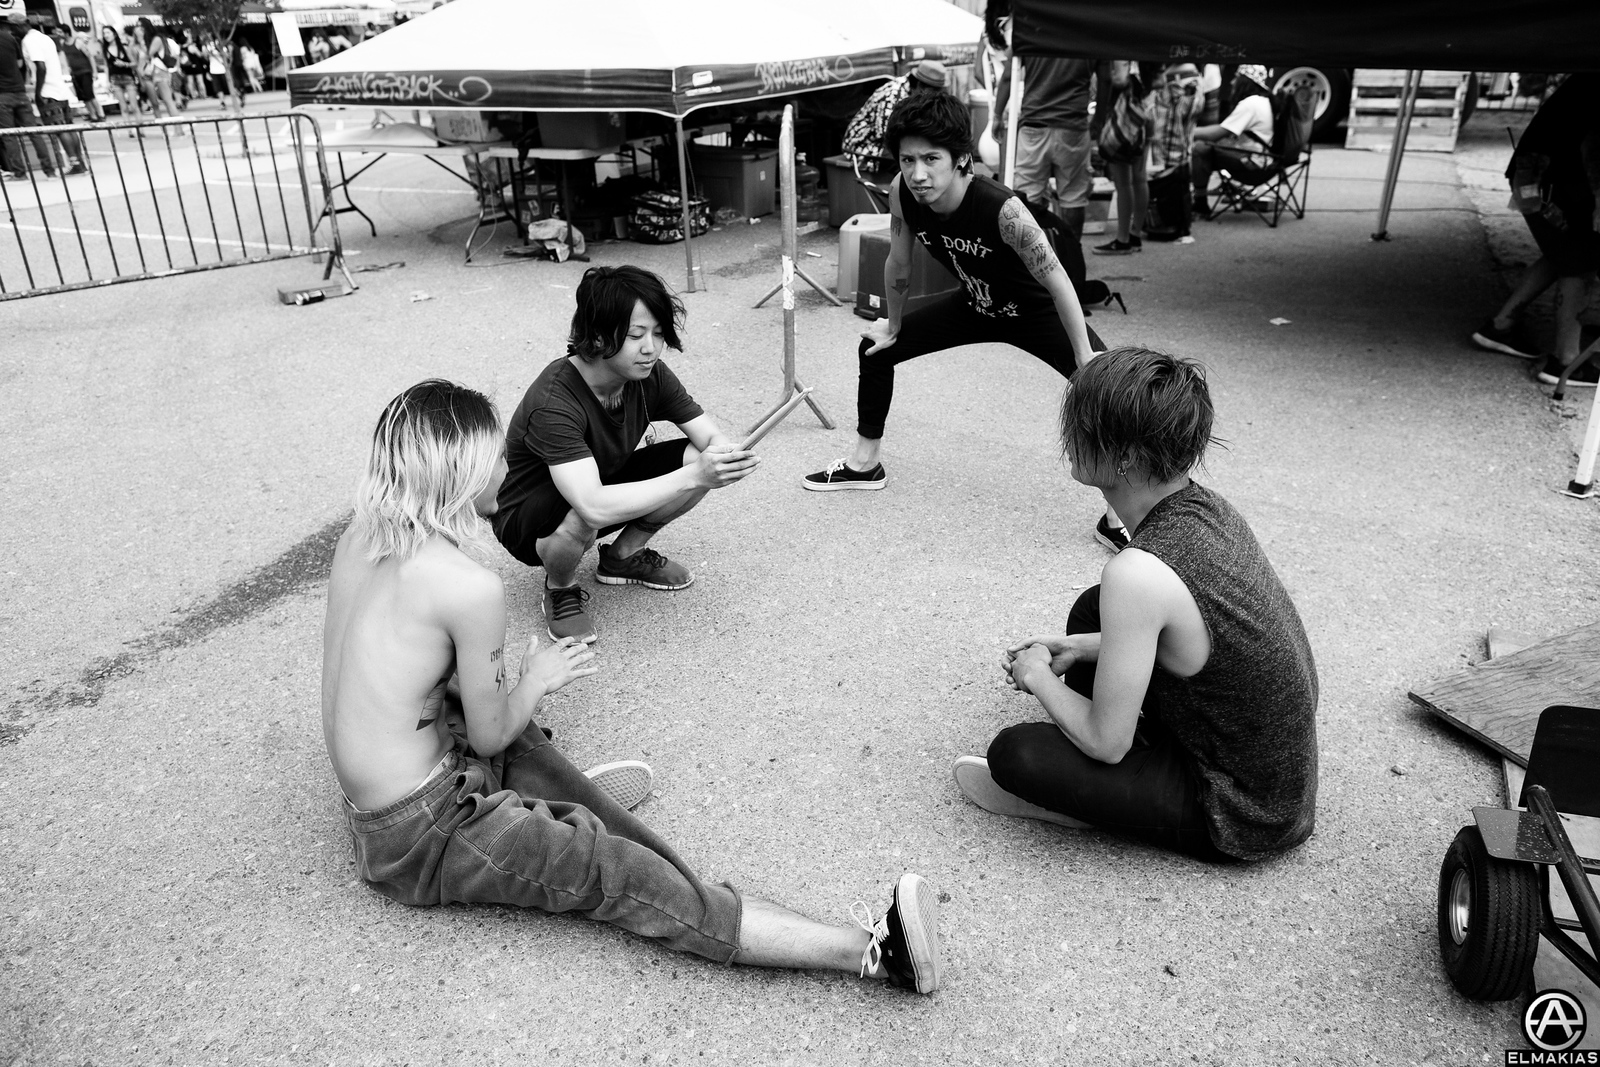 ONE OK ROCK stretching for stage